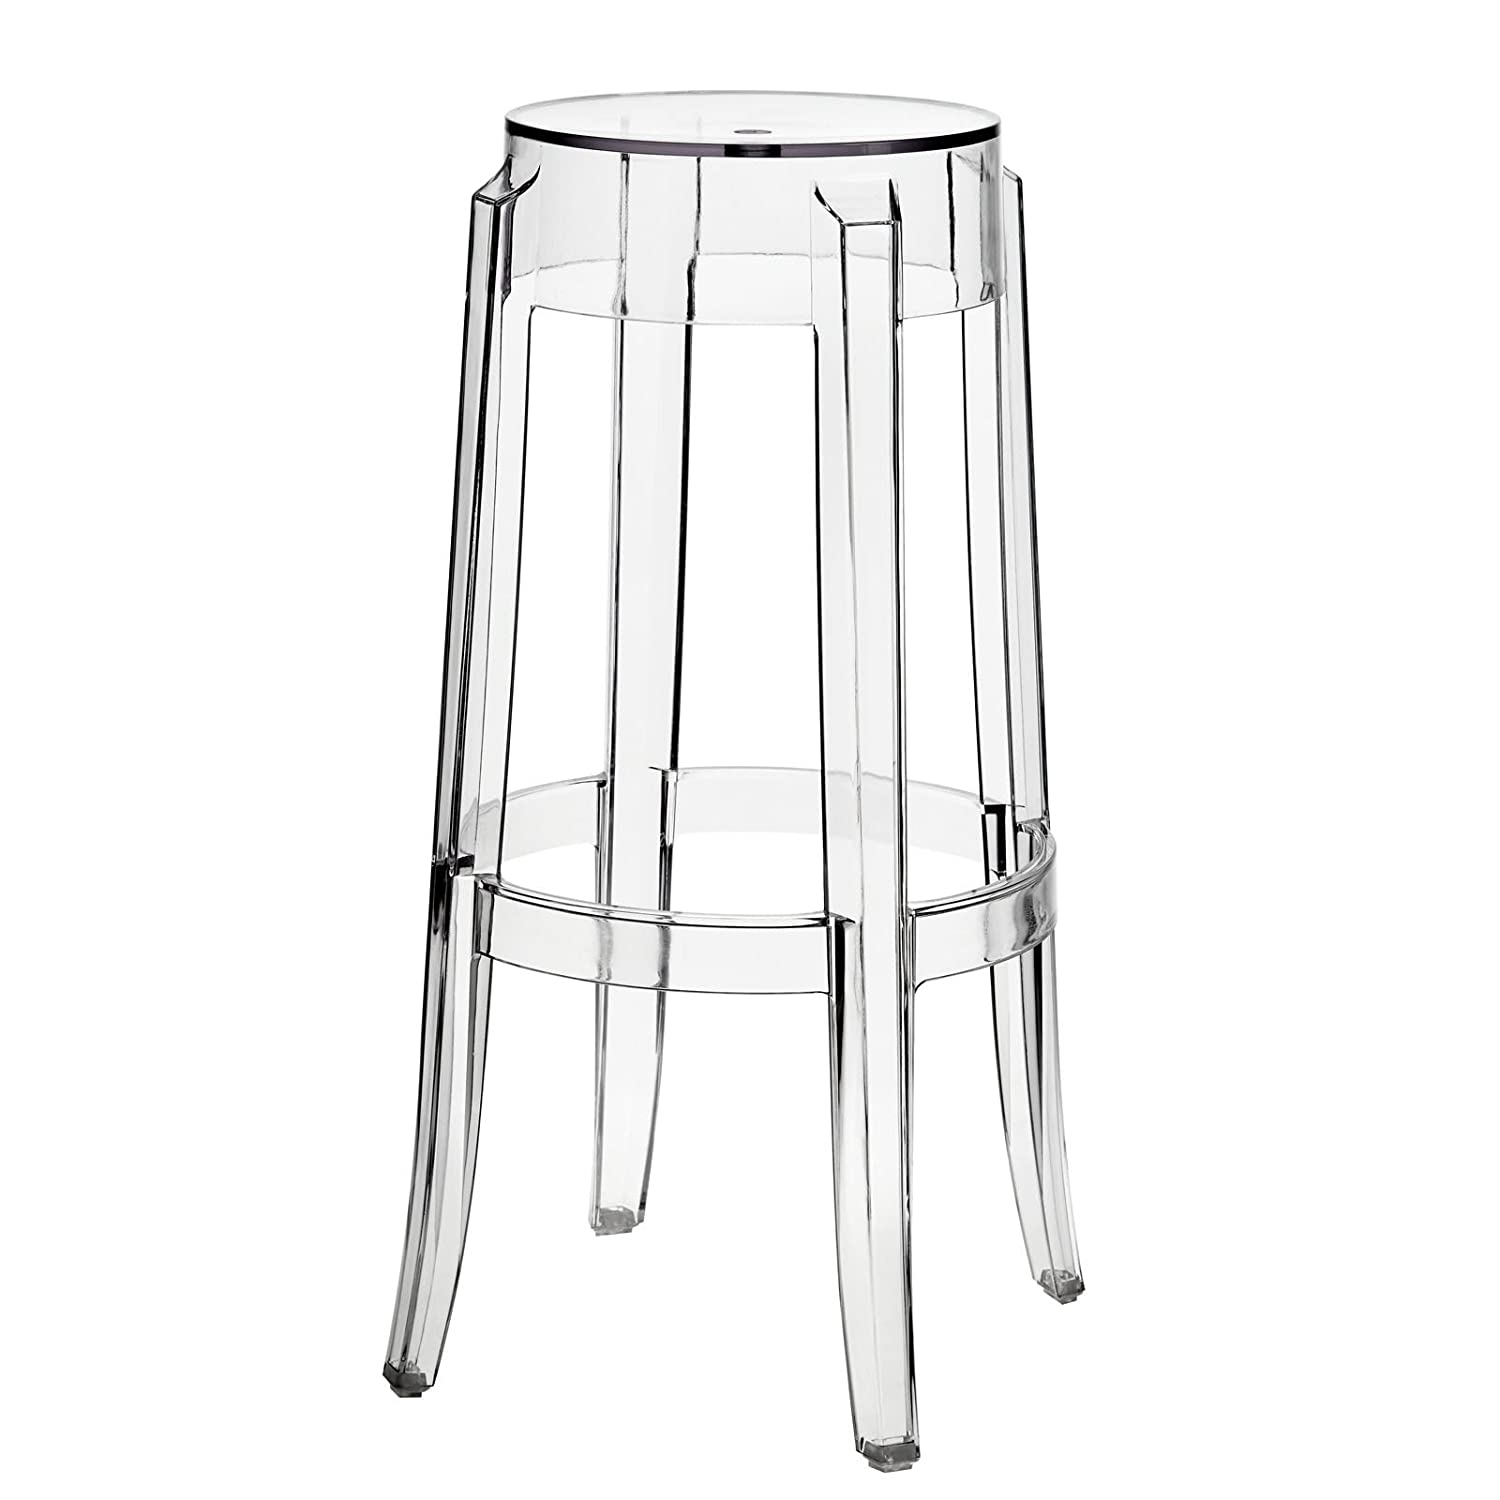 Amazon.com Modway Casper Bar Stools Set of 2 in Clear Kitchen u0026 Dining  sc 1 st  Amazon.com & Amazon.com: Modway Casper Bar Stools Set of 2 in Clear: Kitchen ... islam-shia.org